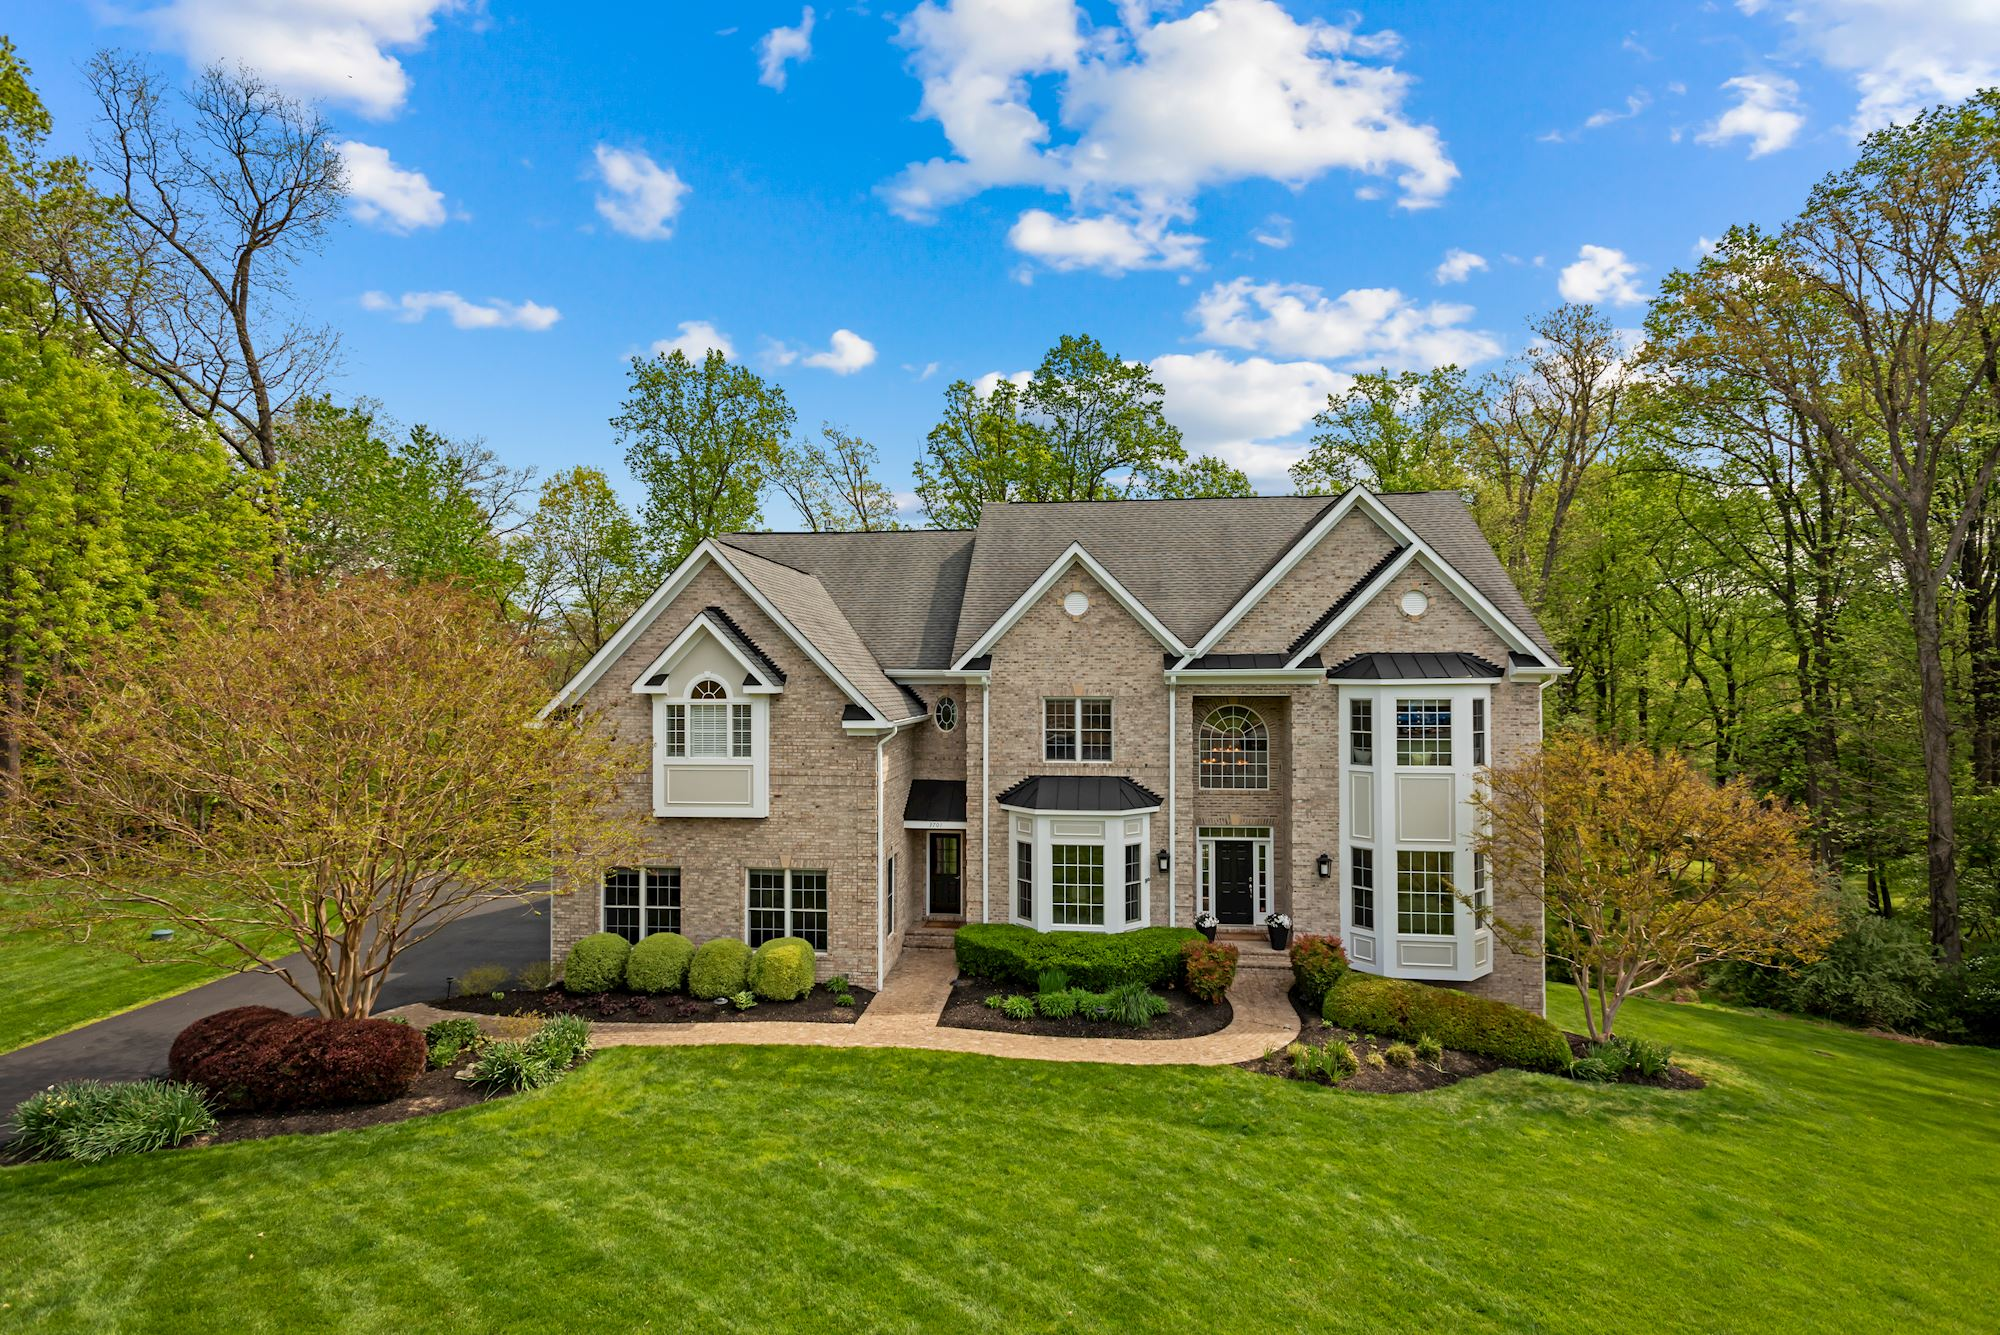 Custom Built 8000 SQFT Estate Perfectly Situated on Over 2.6 Acres in Fairfax